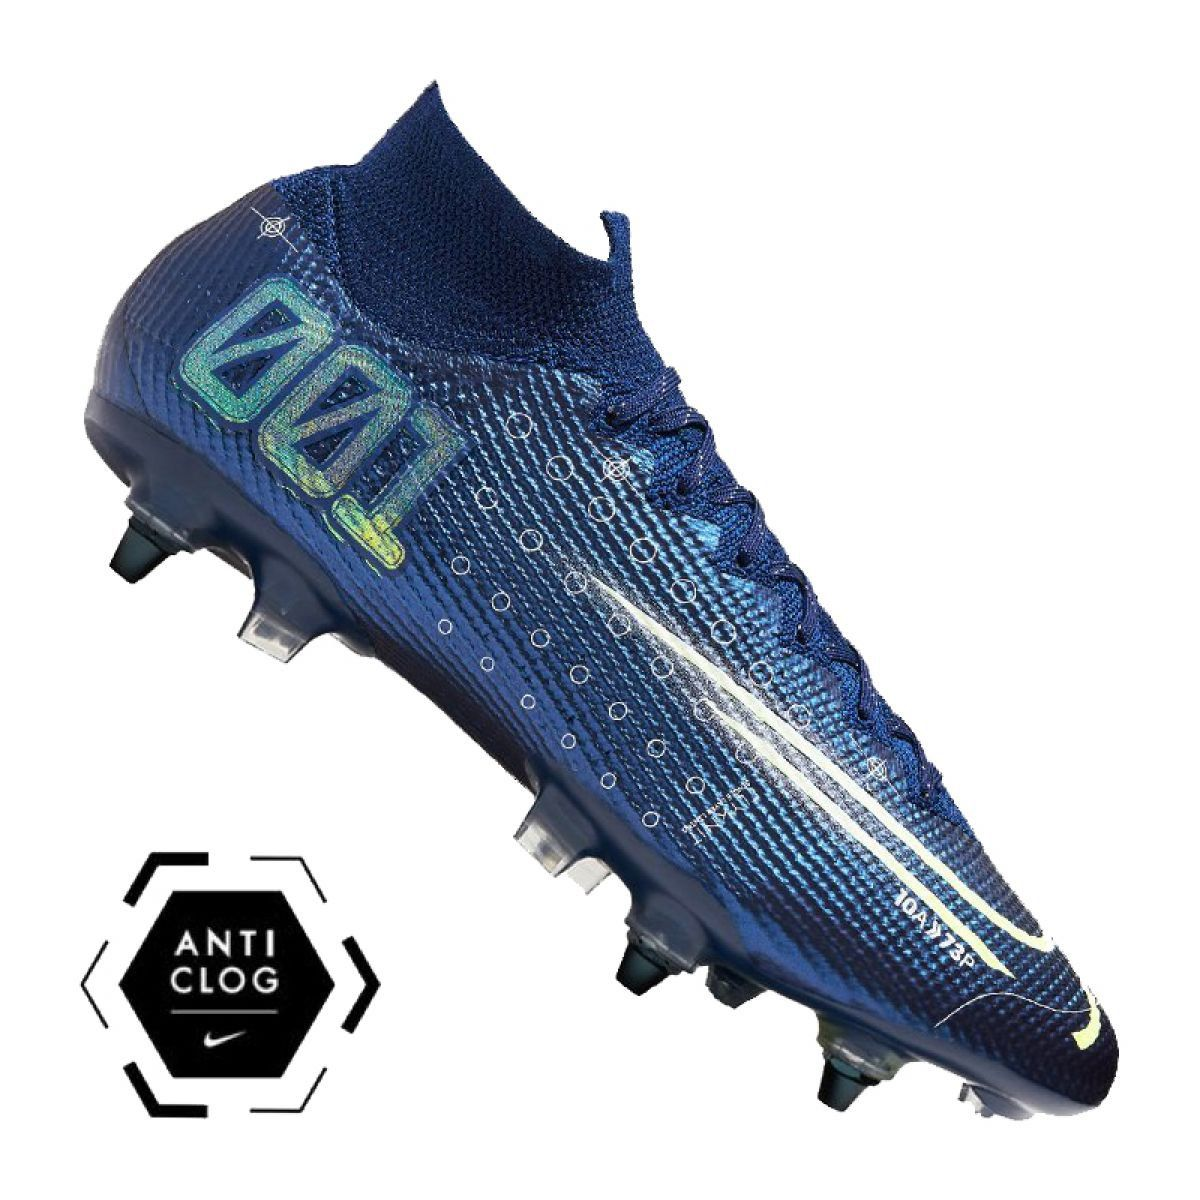 Nike Superfly 7 Elite Mds Sg Pro Ac M Ck0013 401 Football Shoes